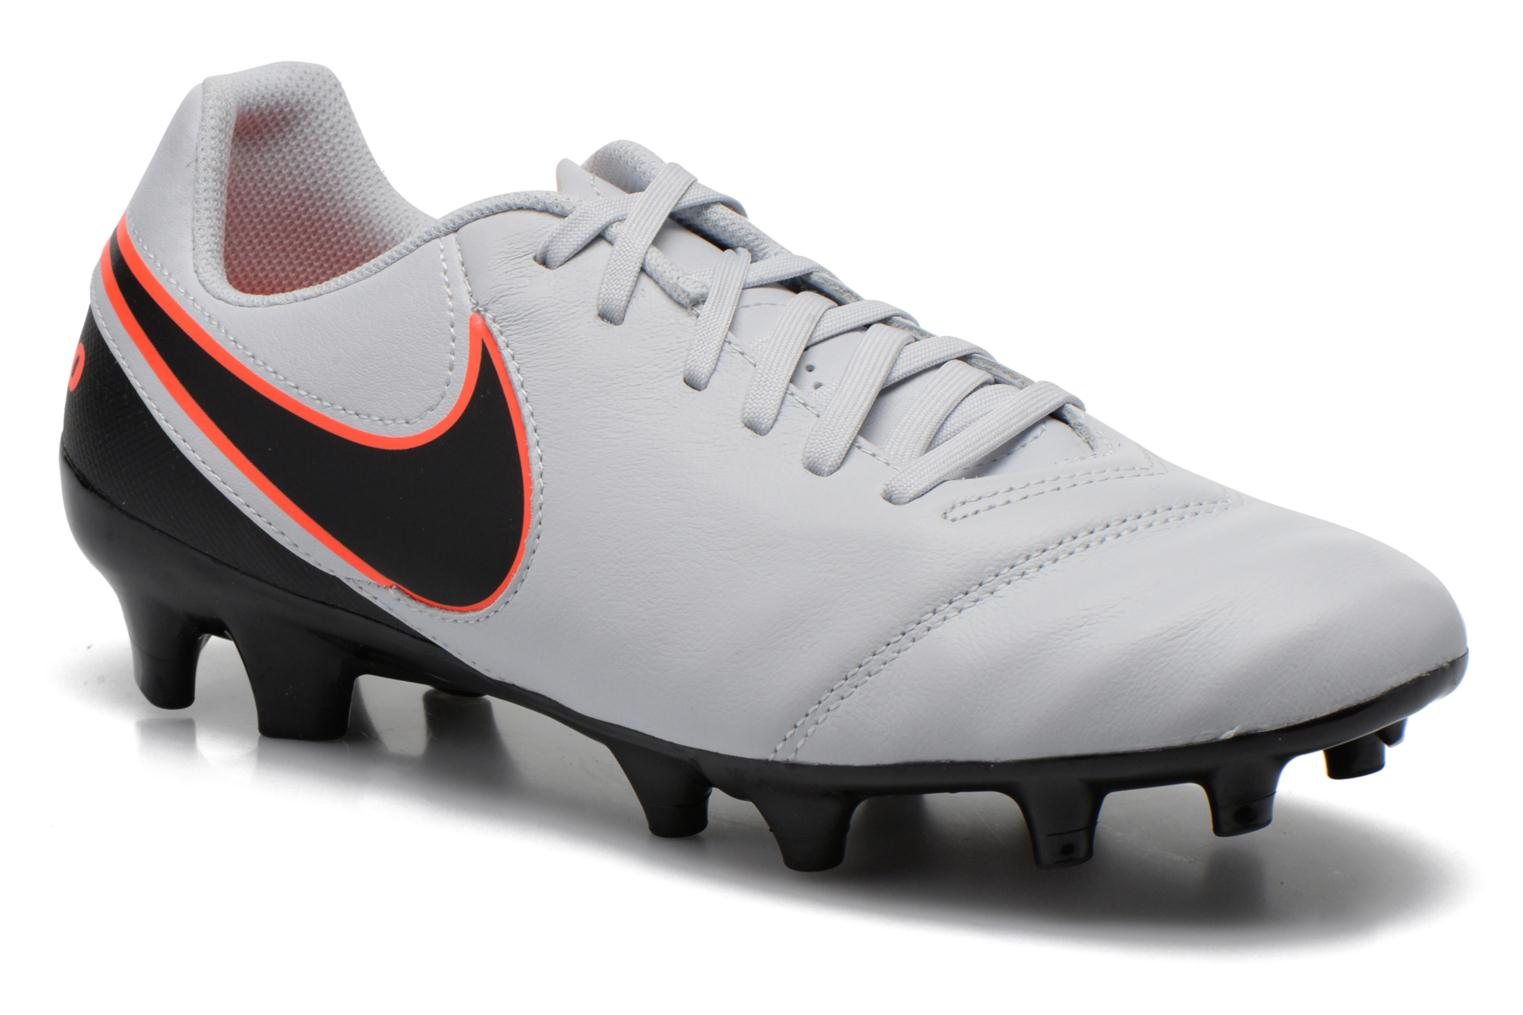 Sportschoenen Tiempo Genio II Leather Fg by Nike